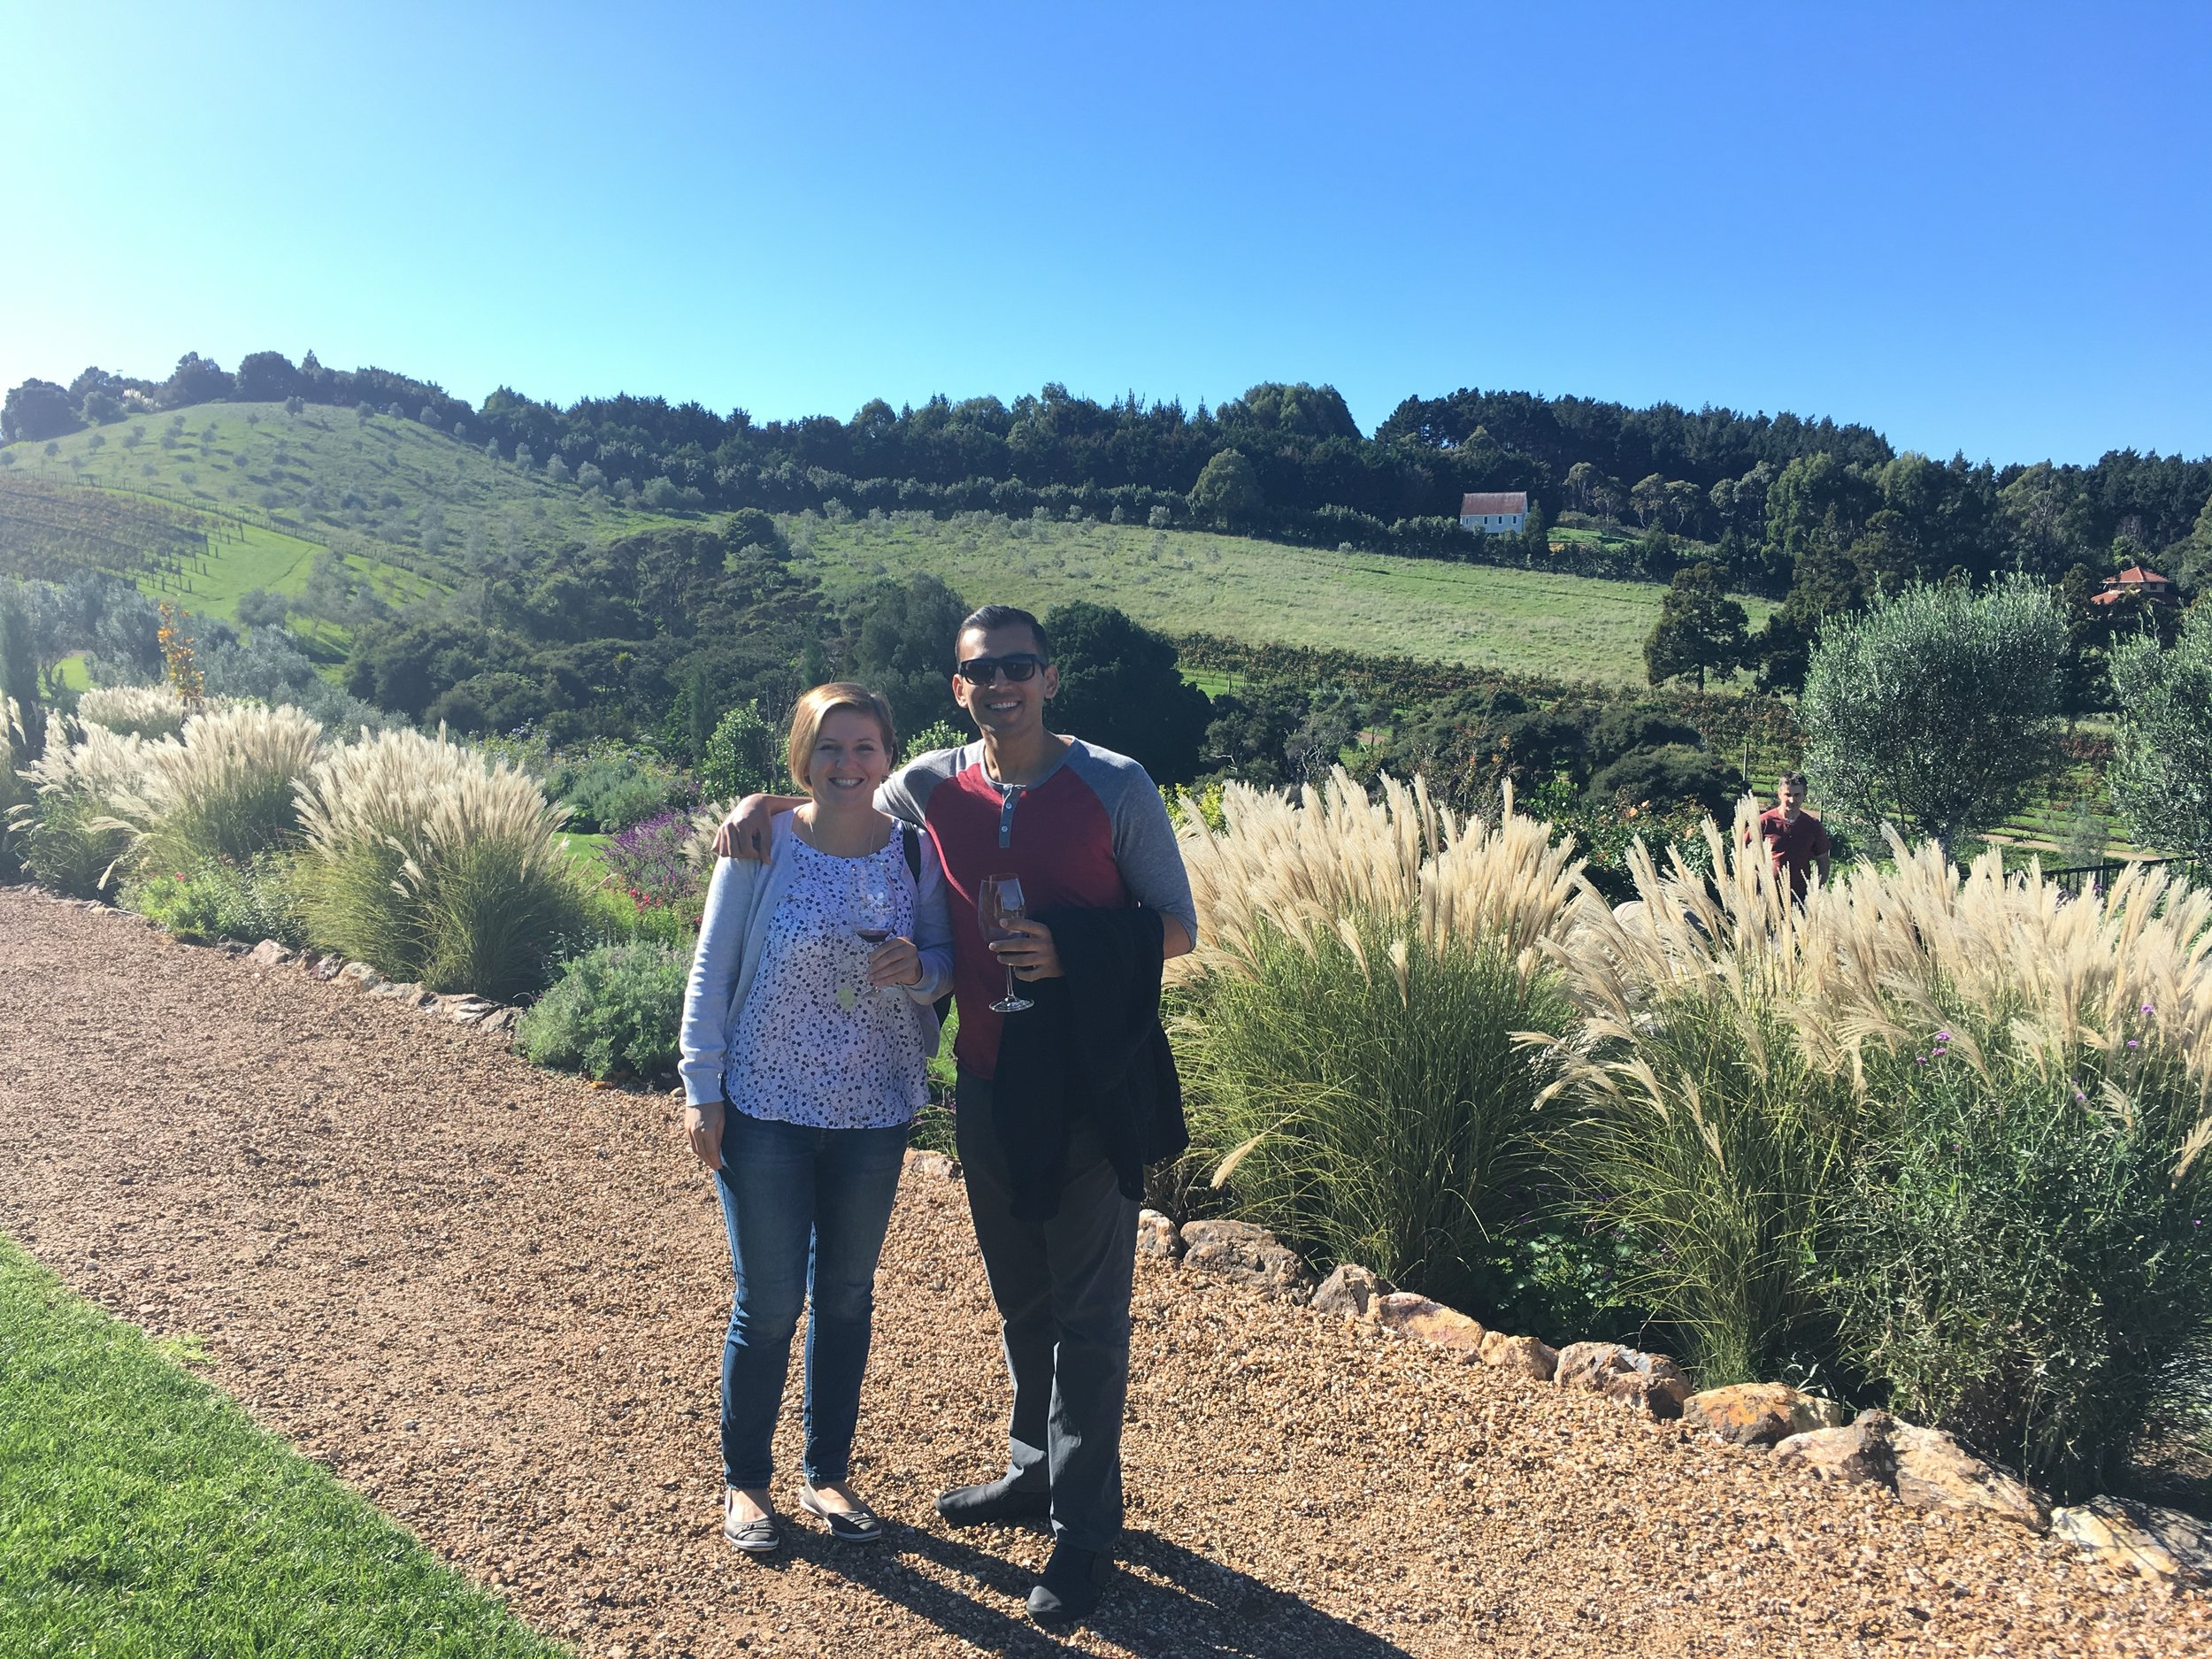 Showing my old colleague Neil around Waiheke